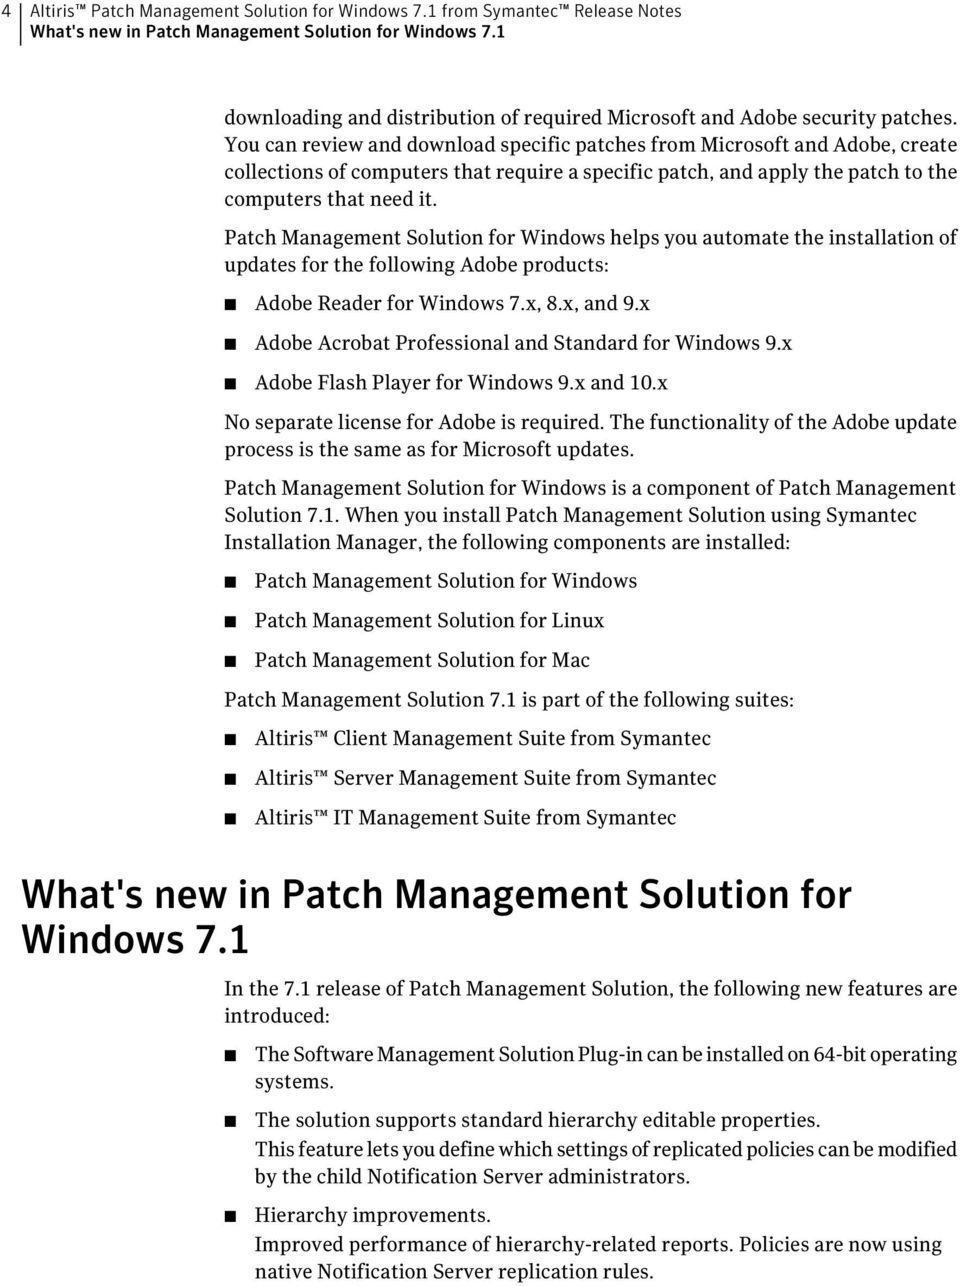 You can review and download specific patches from Microsoft and Adobe, create collections of computers that require a specific patch, and apply the patch to the computers that need it.